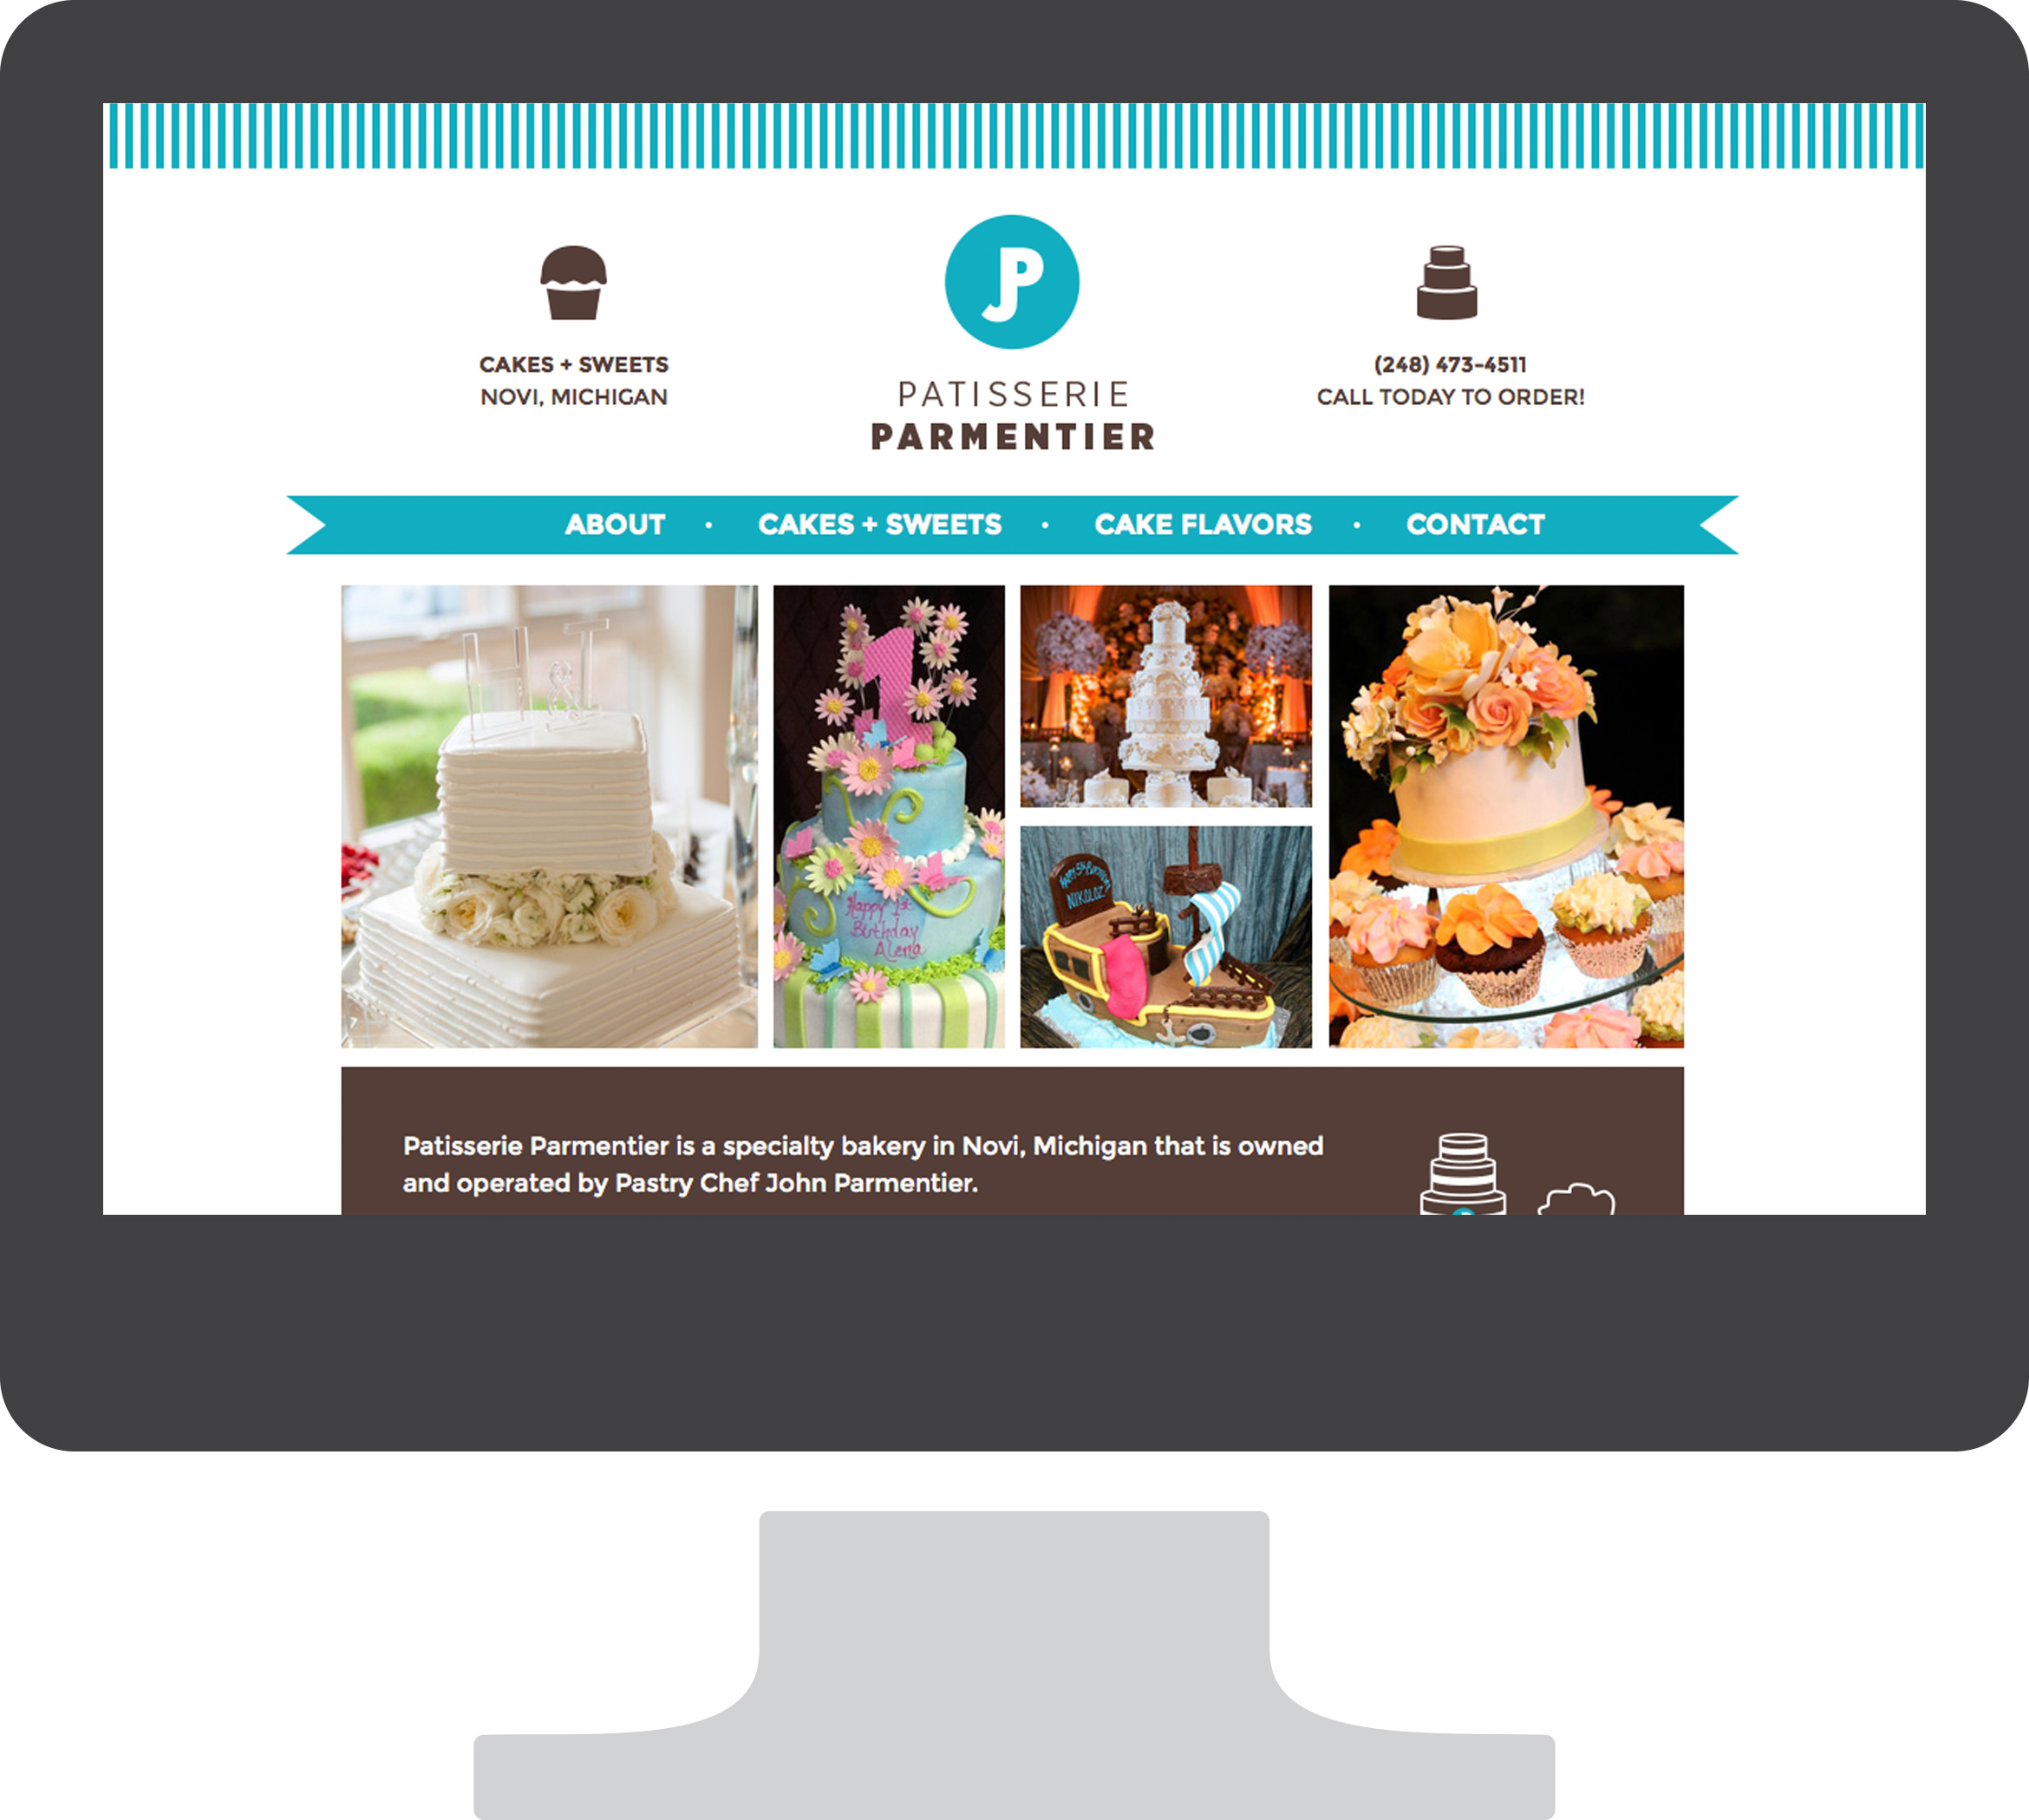 Patisserie Parmentier website mockup